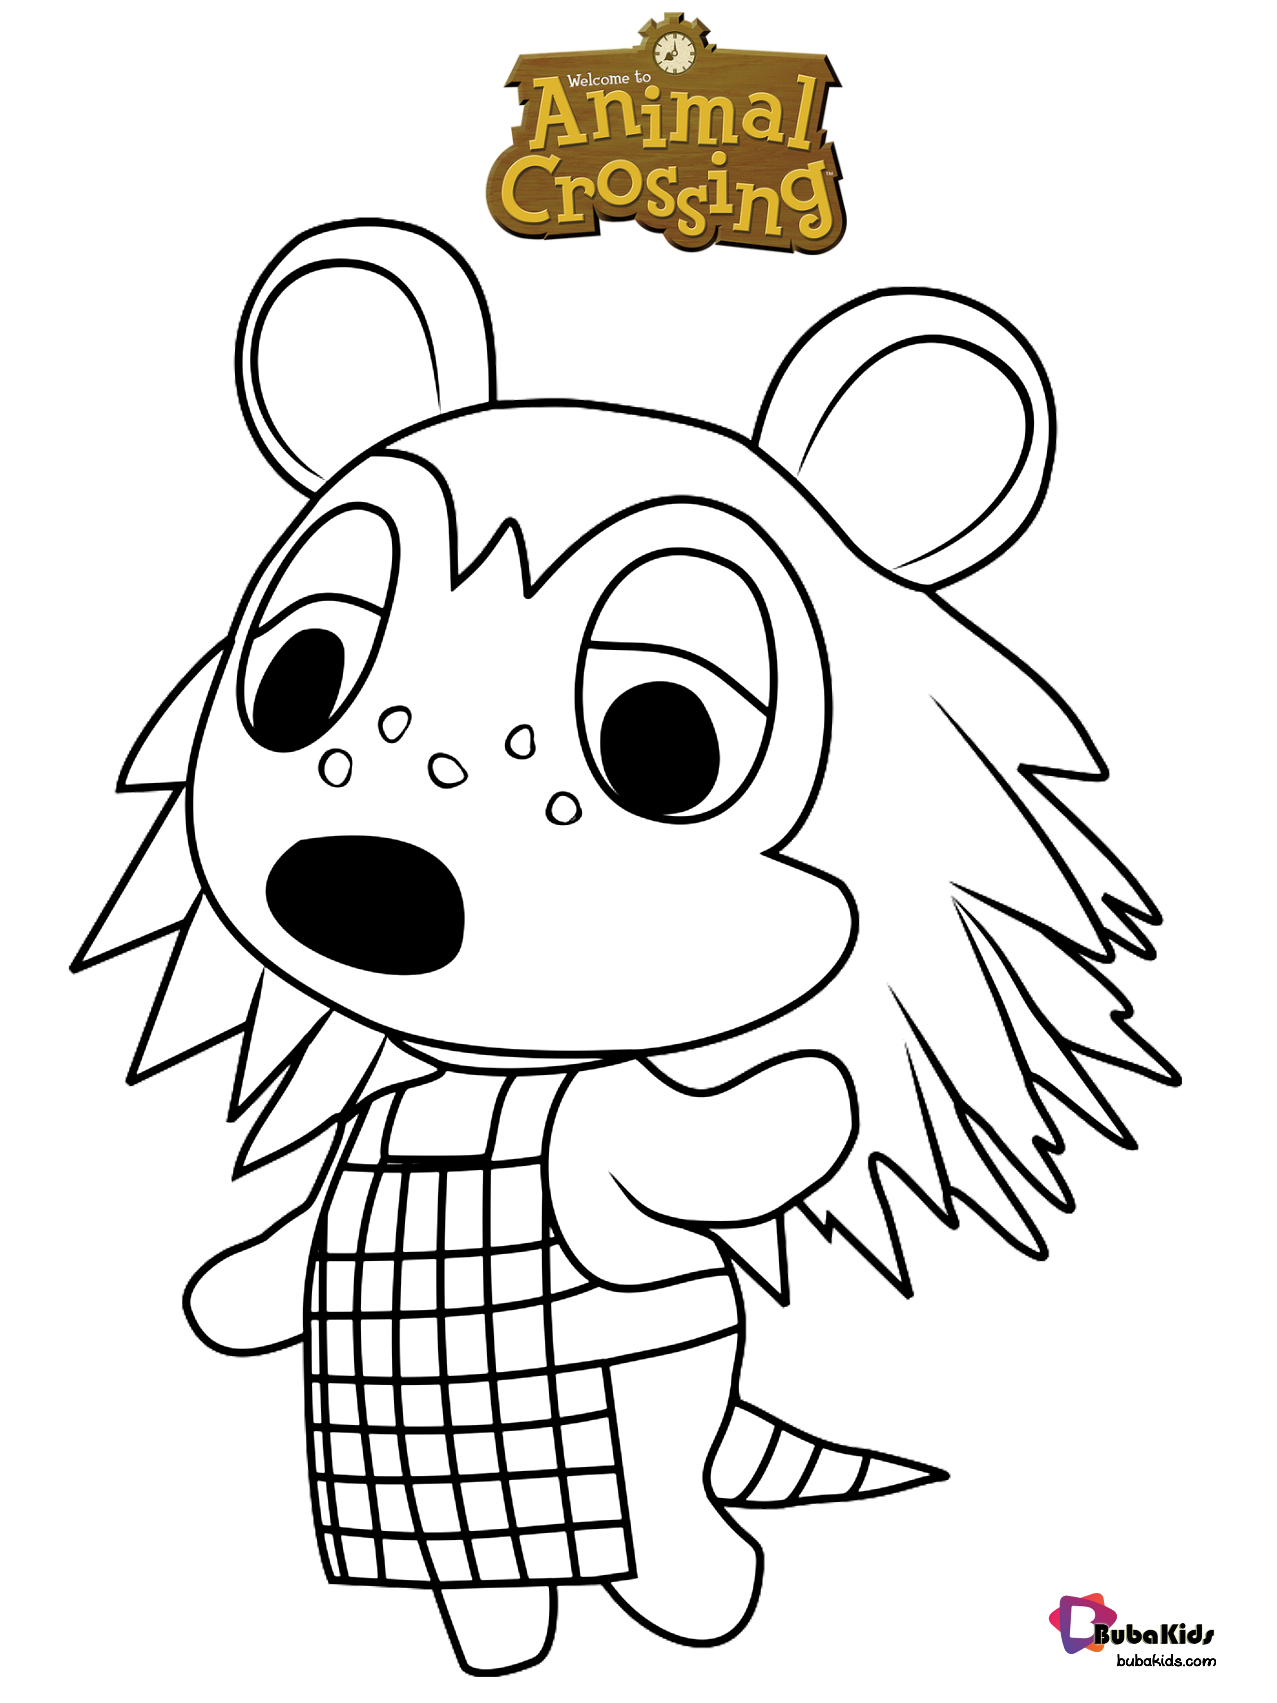 Free Download To Print Sable Animal Crossing Coloring Page For Kids Collection Of Cartoon Color Animal Crossing Fan Art Animal Coloring Pages Animal Crossing